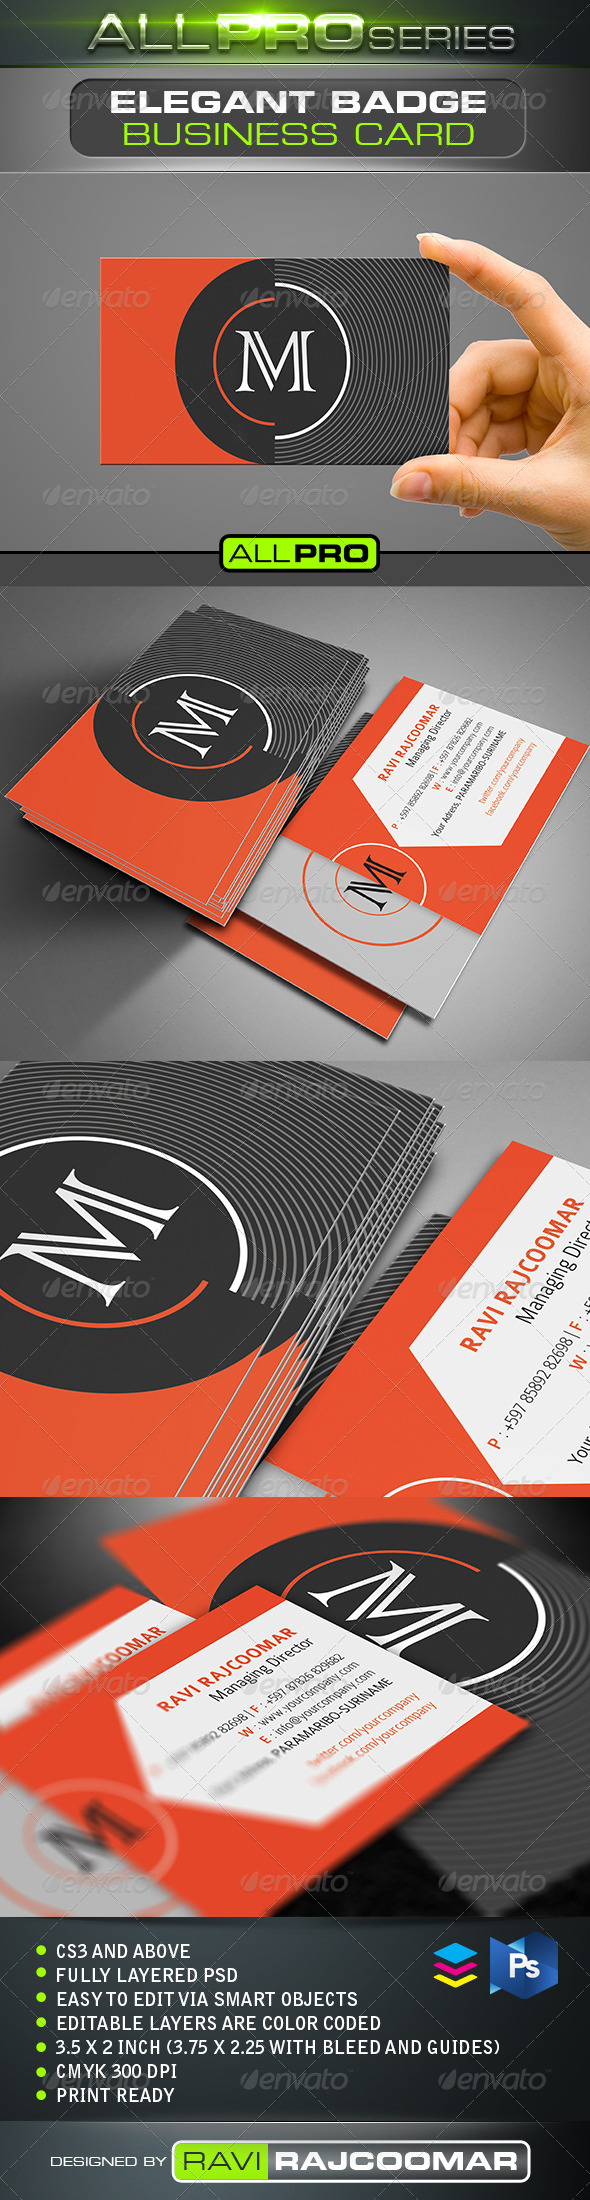 Elegant Badge Business Card - Business Cards Print Templates